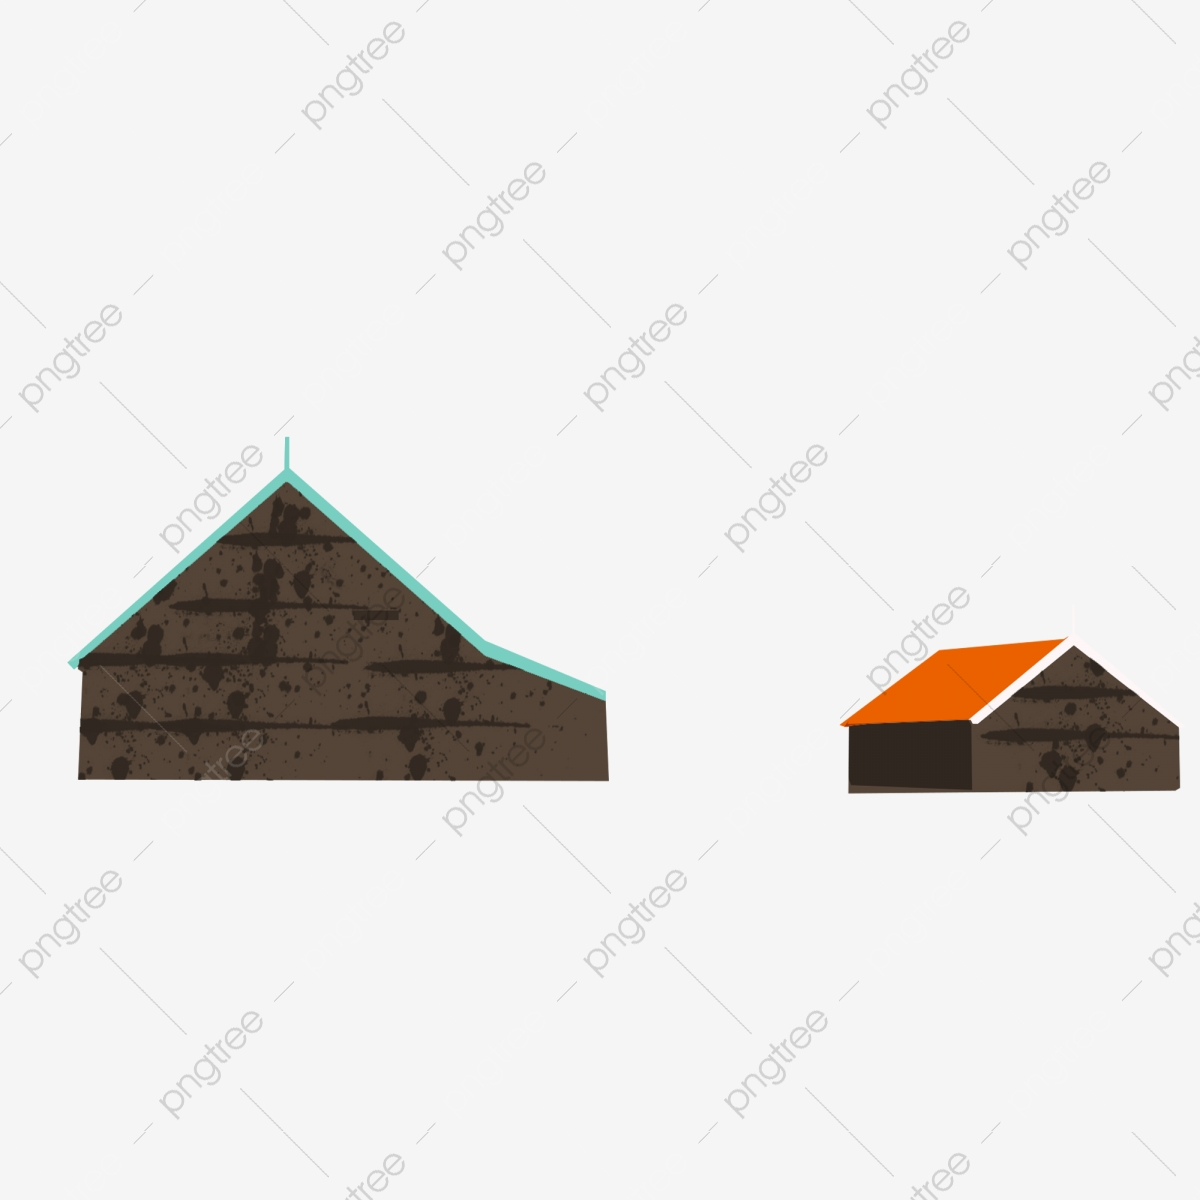 House Hand Drawn Design Cartoon Orange Roof Dark Grey House Building Triangle Png Transparent Clipart Image And Psd File For Free Download